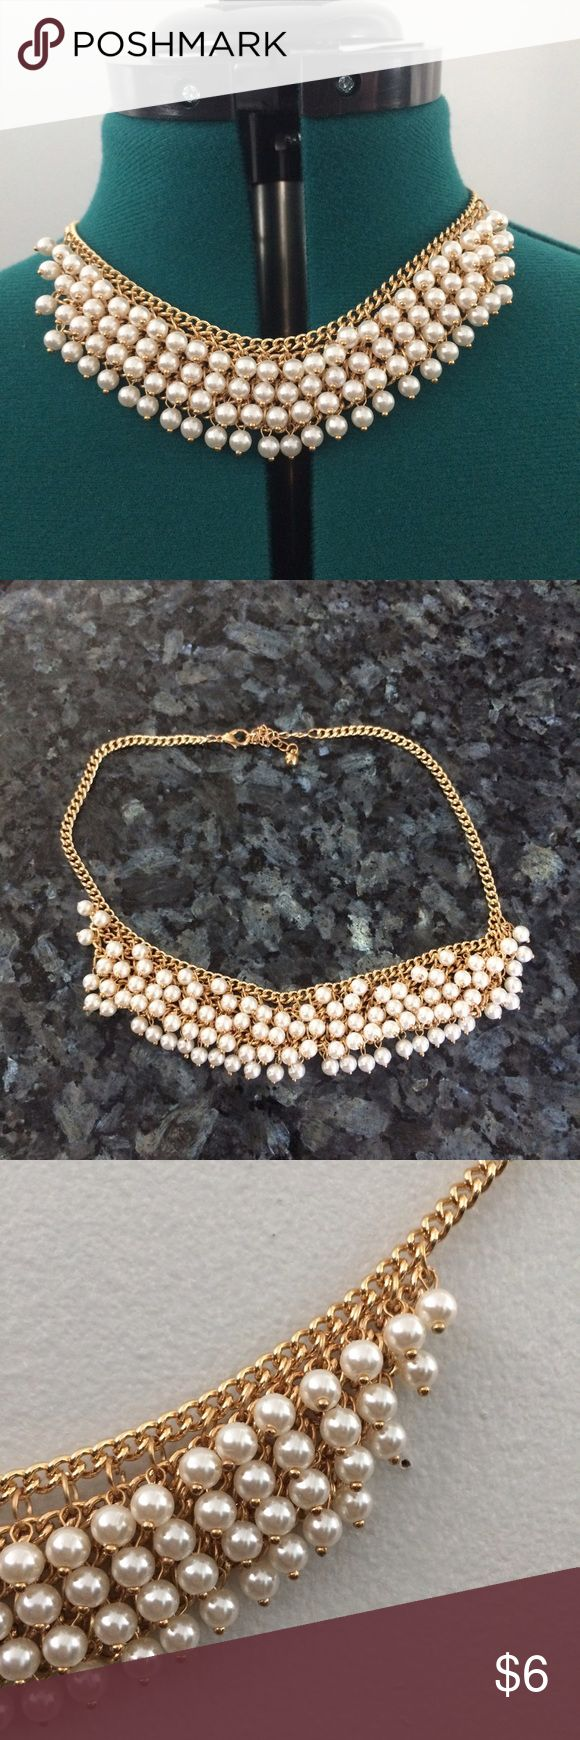 Pearl Statement Necklace Pearl statement necklace with a gold chain. ♡ Jewelry Necklaces